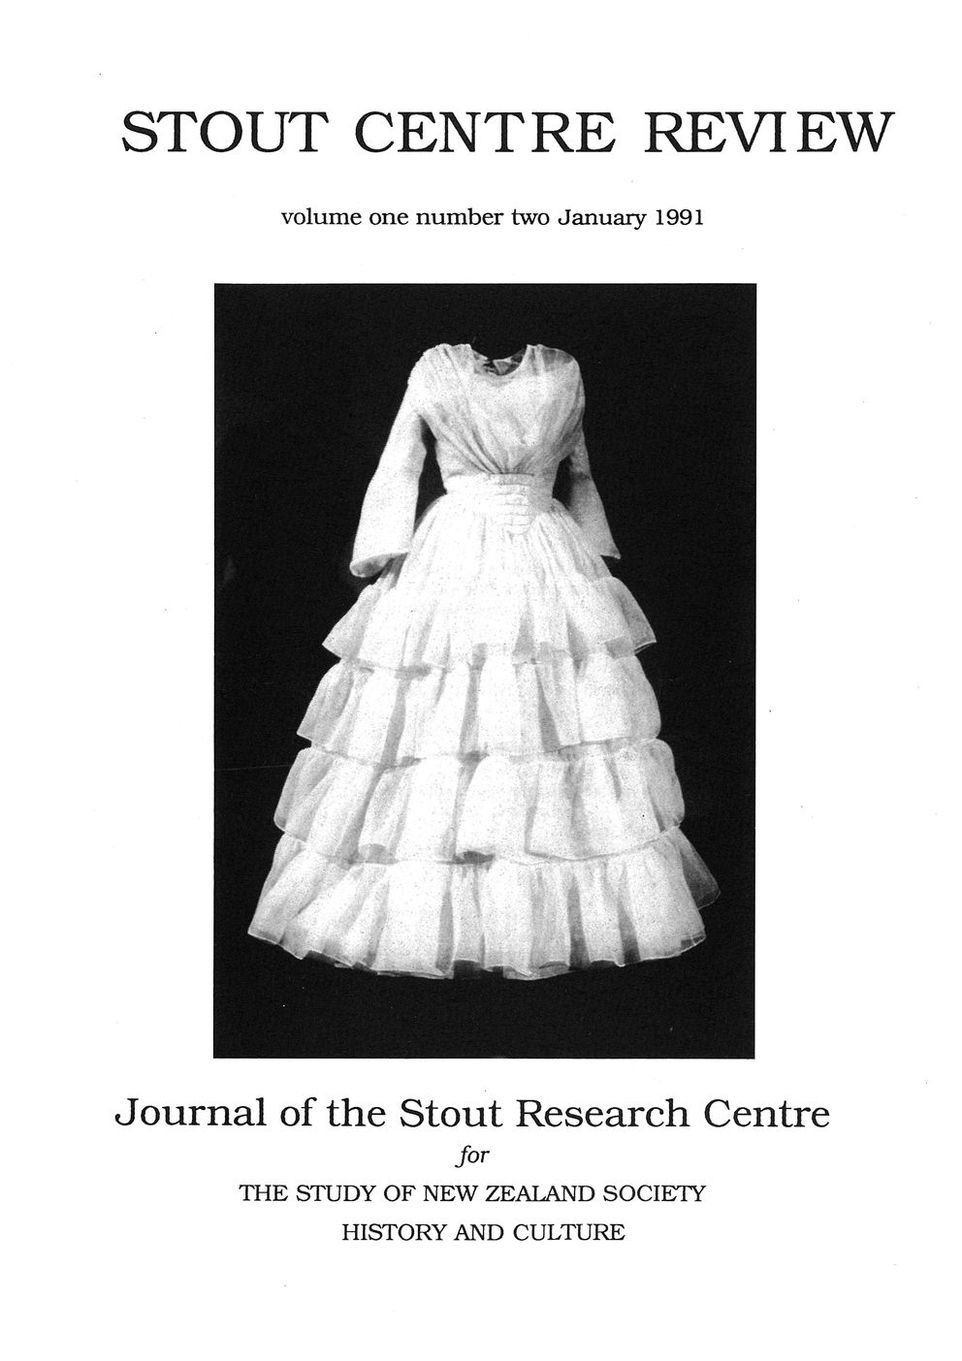 Cover of Stout Centre Review, 1991, V. 1, N. 2.